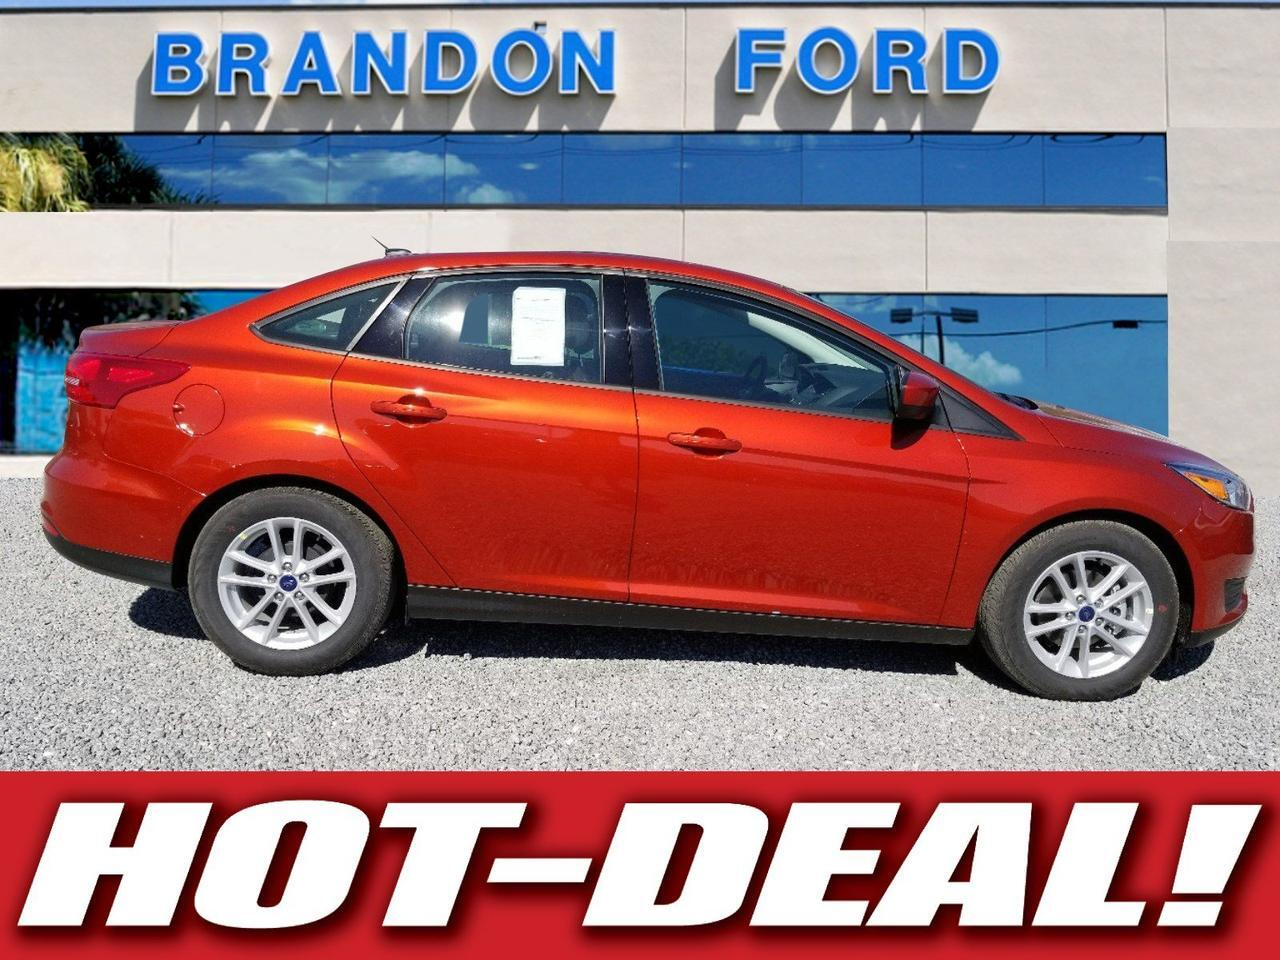 10 Best Certified Pre Owned Luxury Cars Under 30 000: 2018 Ford Focus SE Tampa FL 23153301